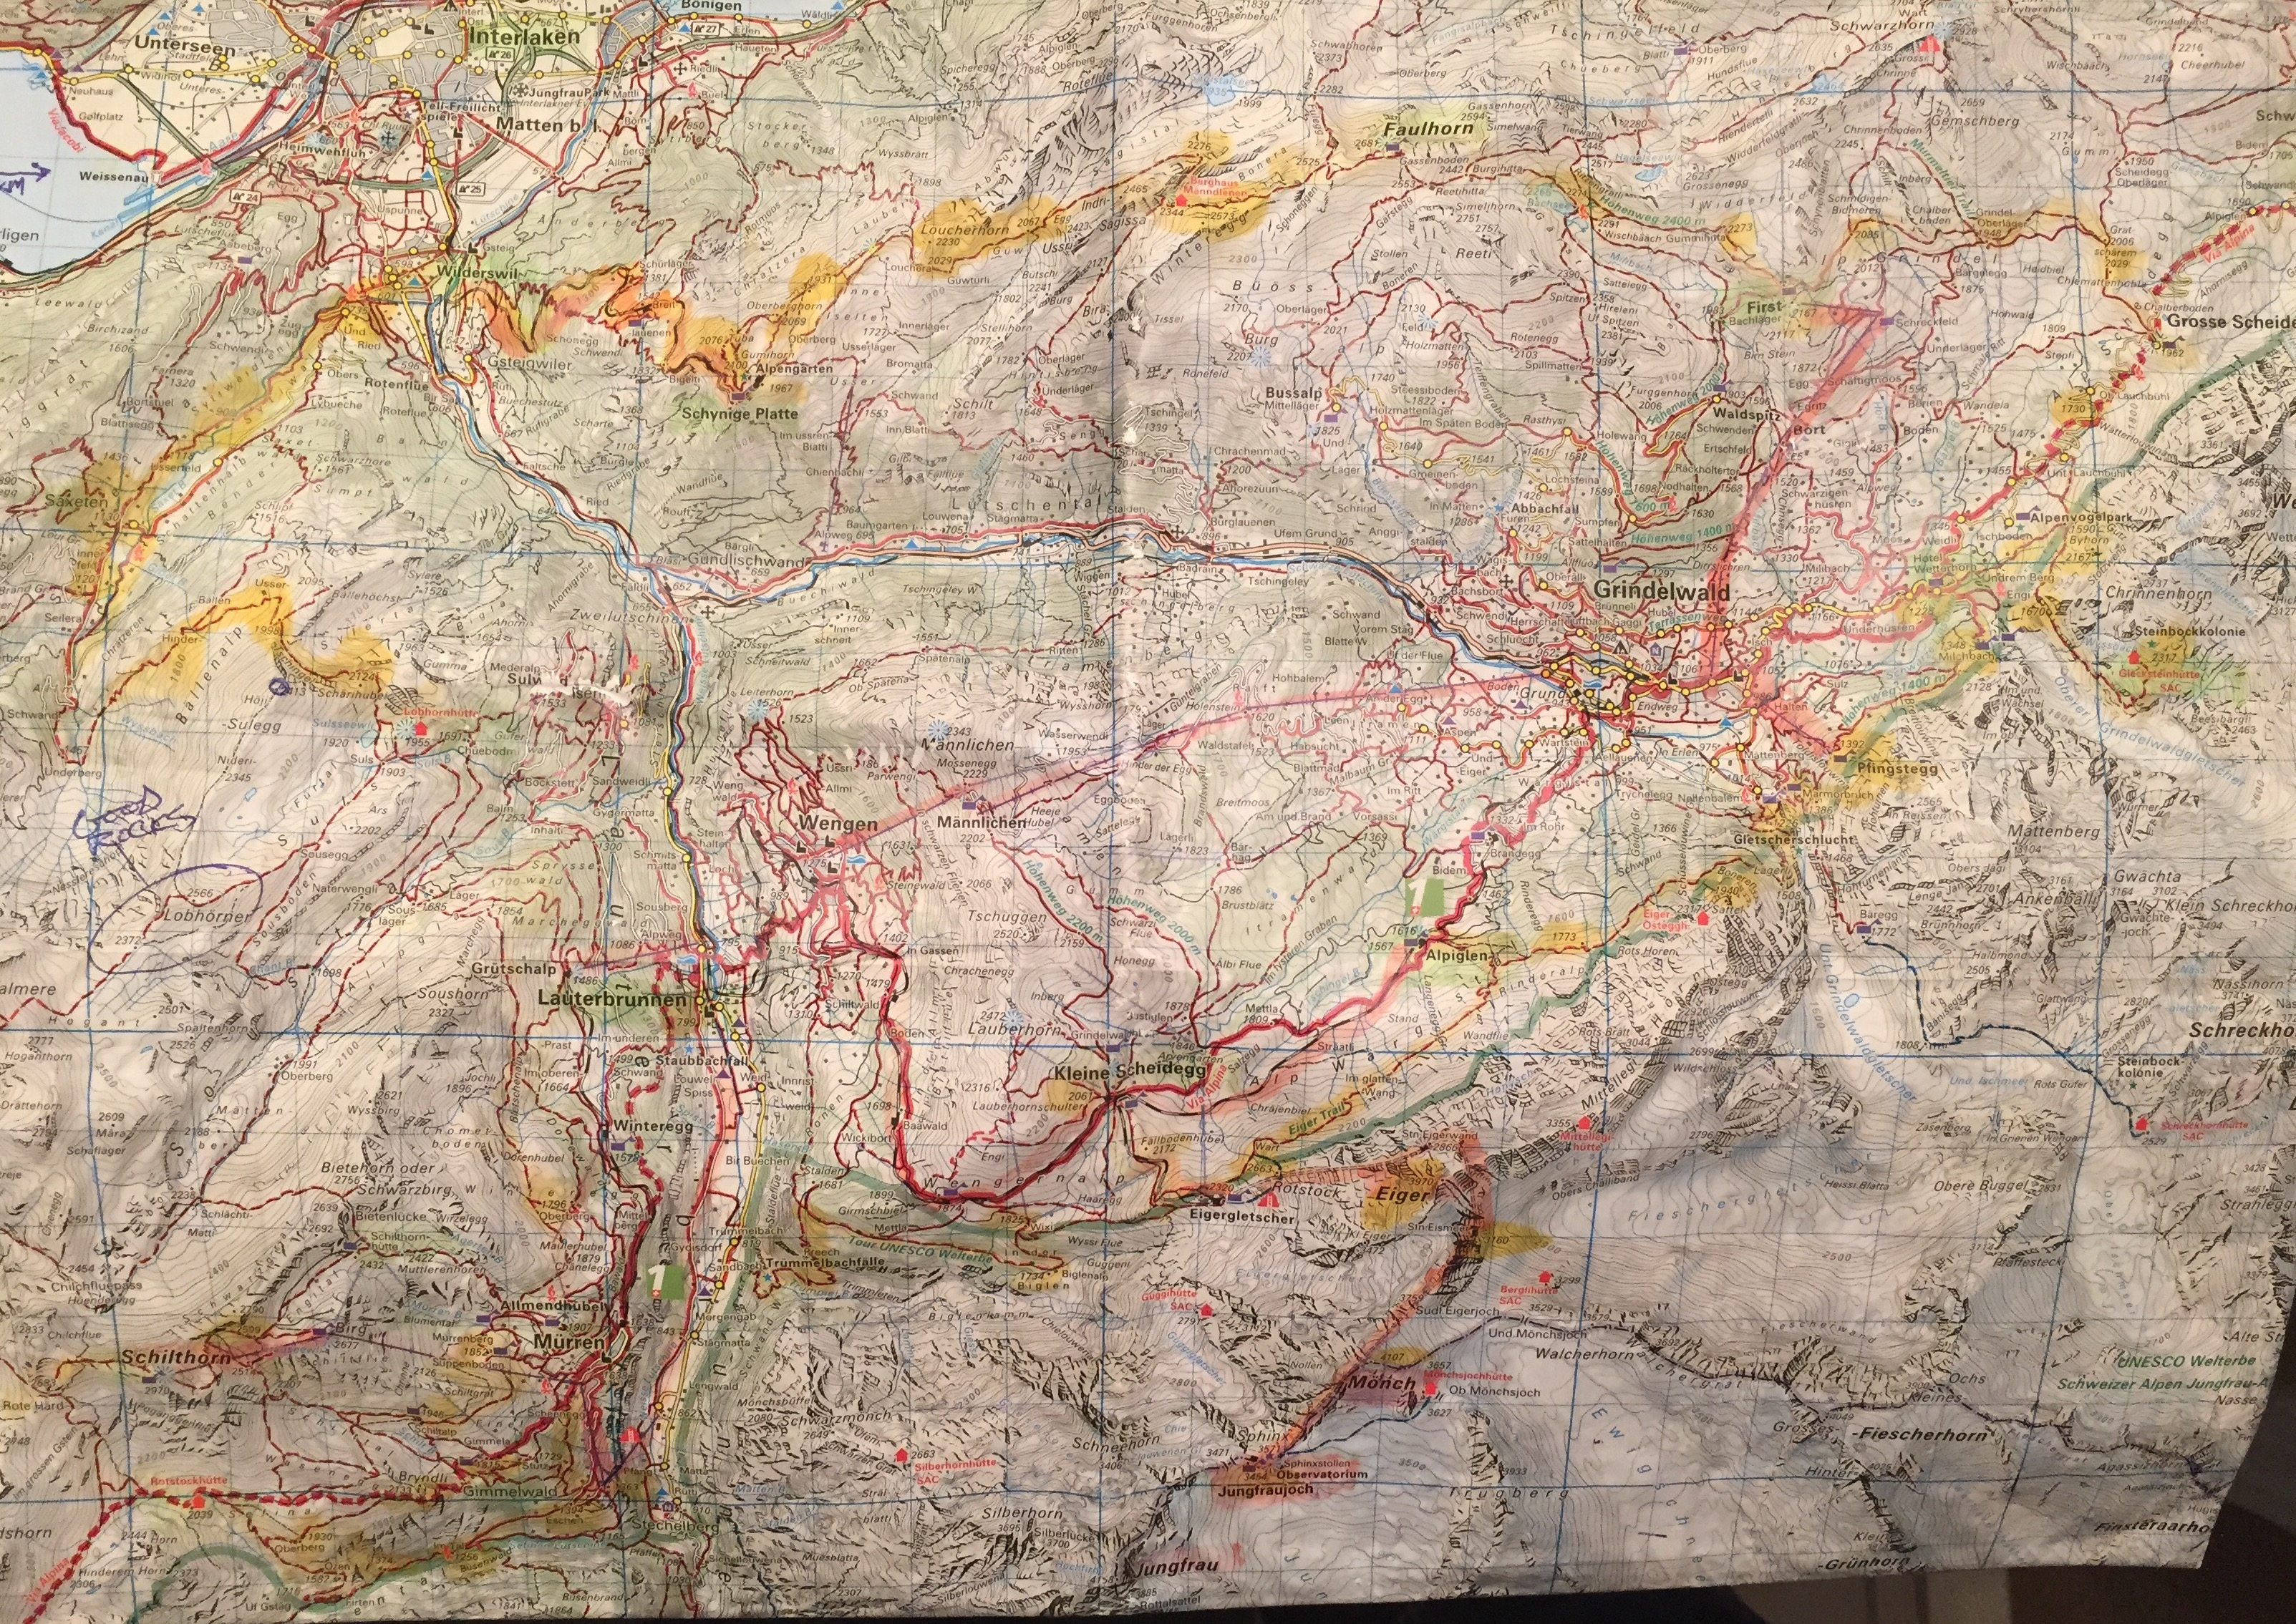 Trail Map Section Used